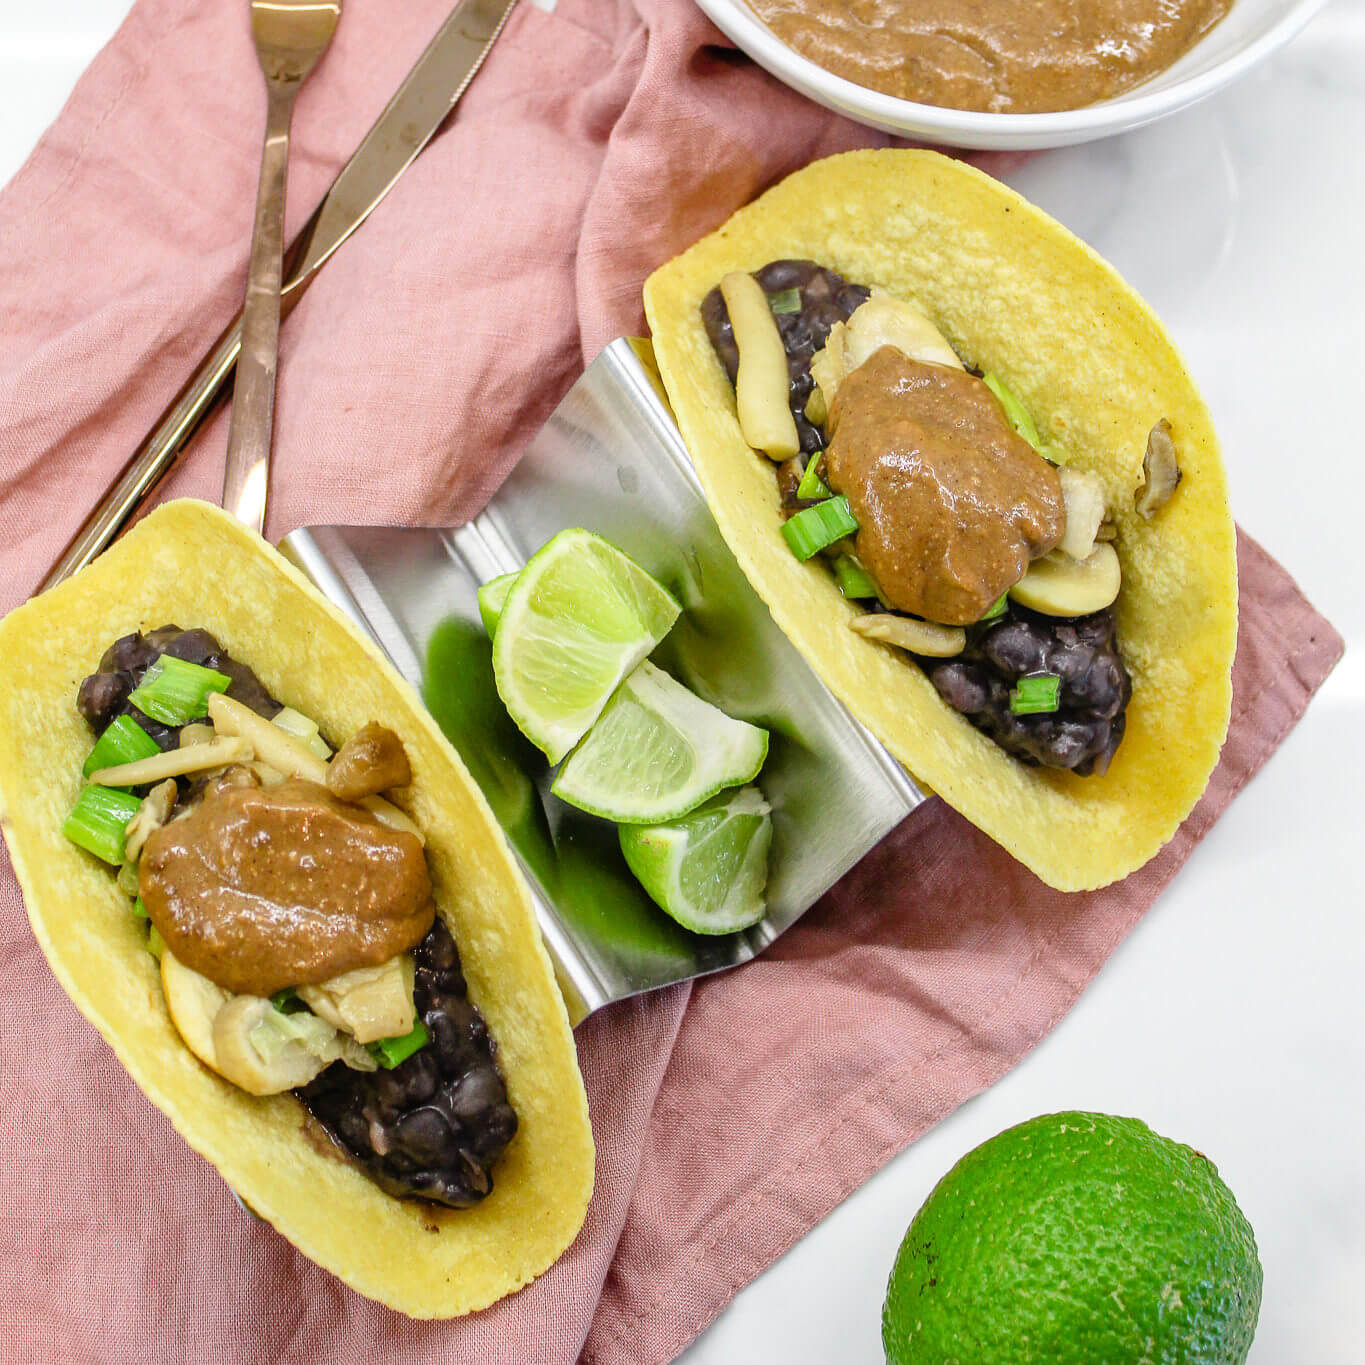 Sustainable and Vegan Lifestyle influencer shares her delicious Mole tacos recipe !!